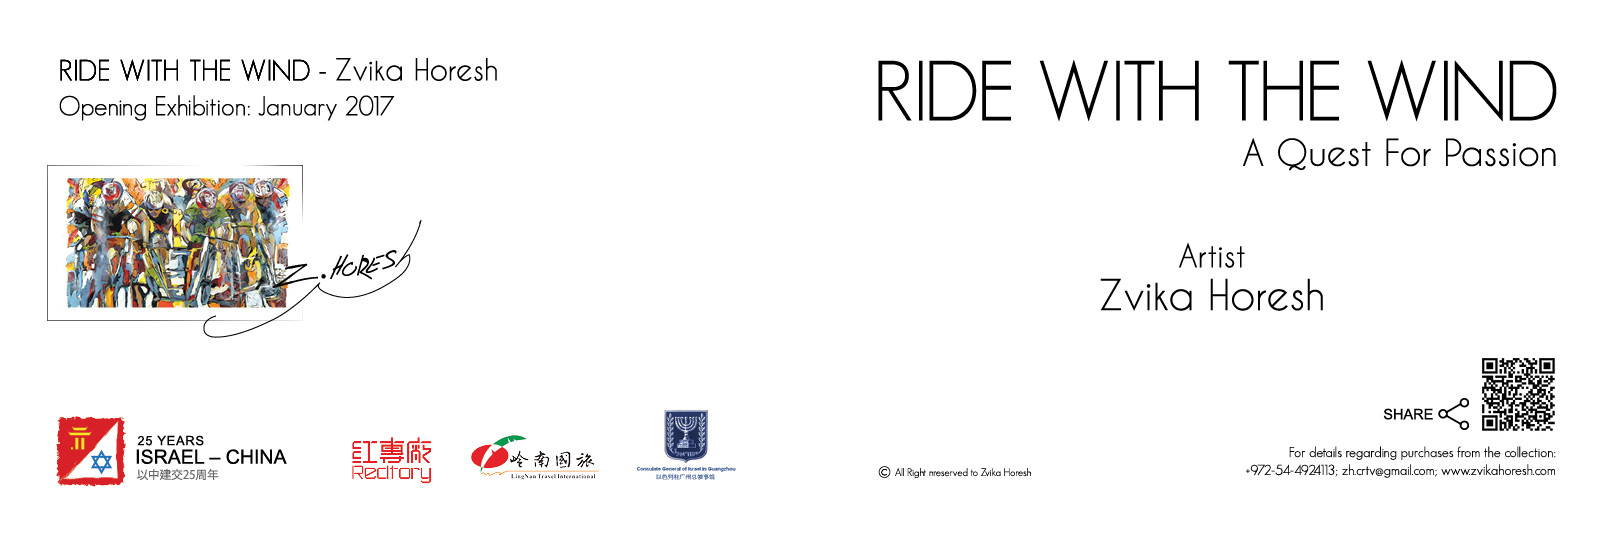 Ride with the wind___spreads2.jpg